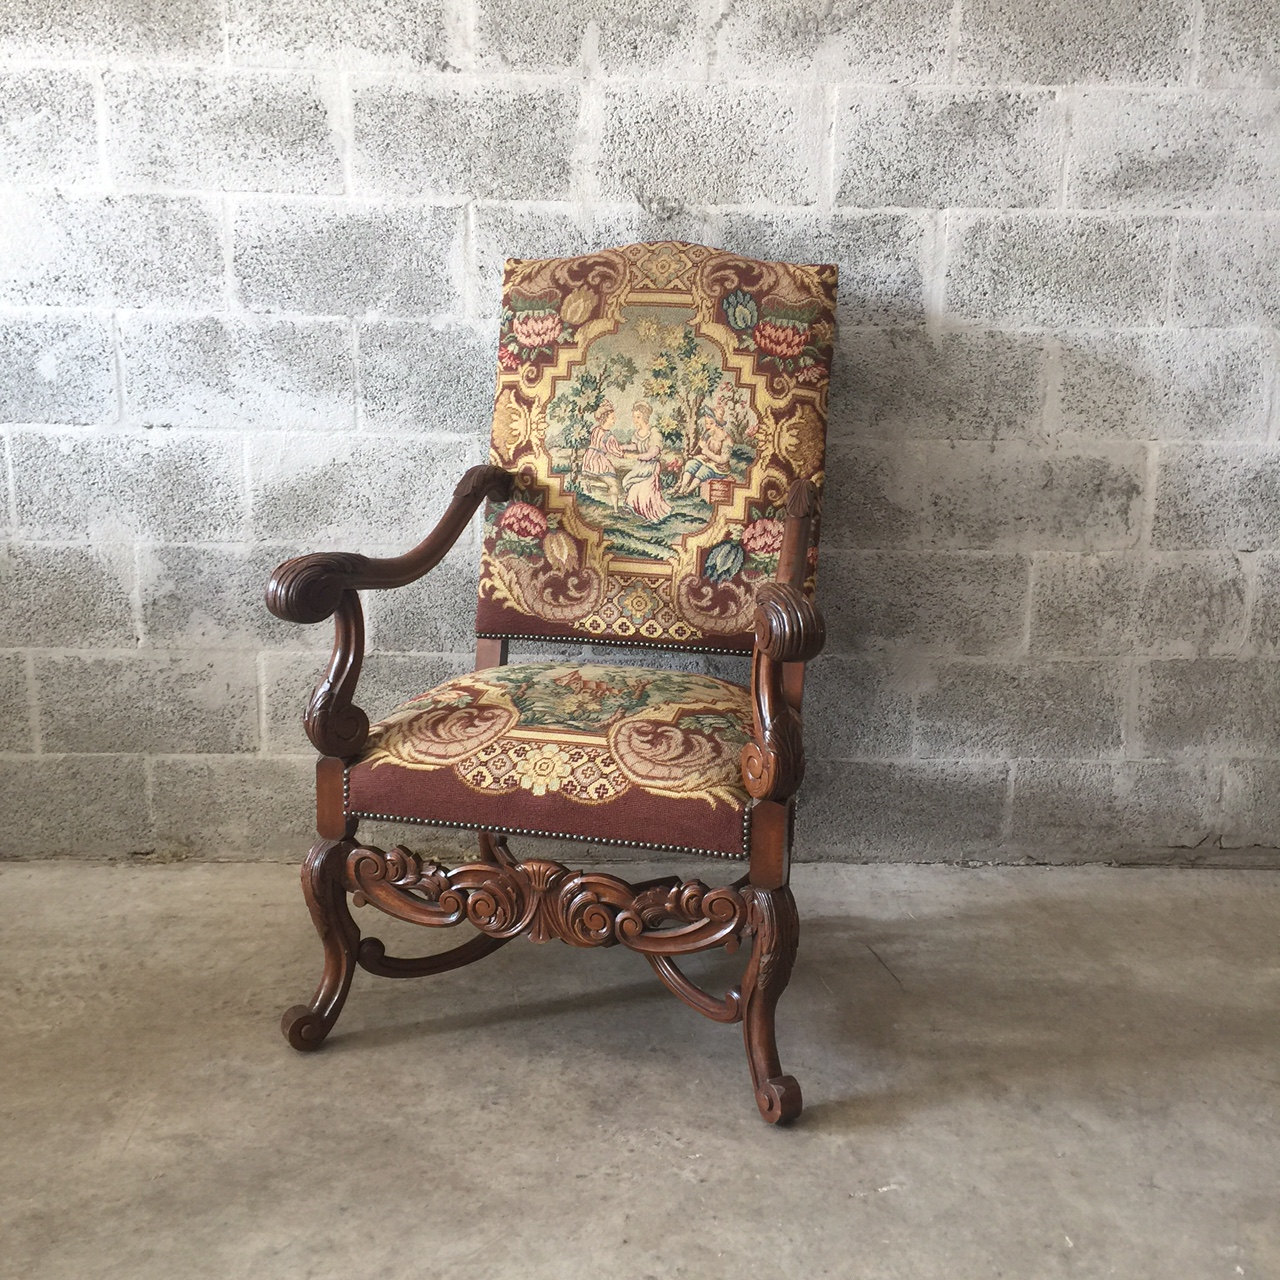 Points To Consider When Buying Vintage Furniture